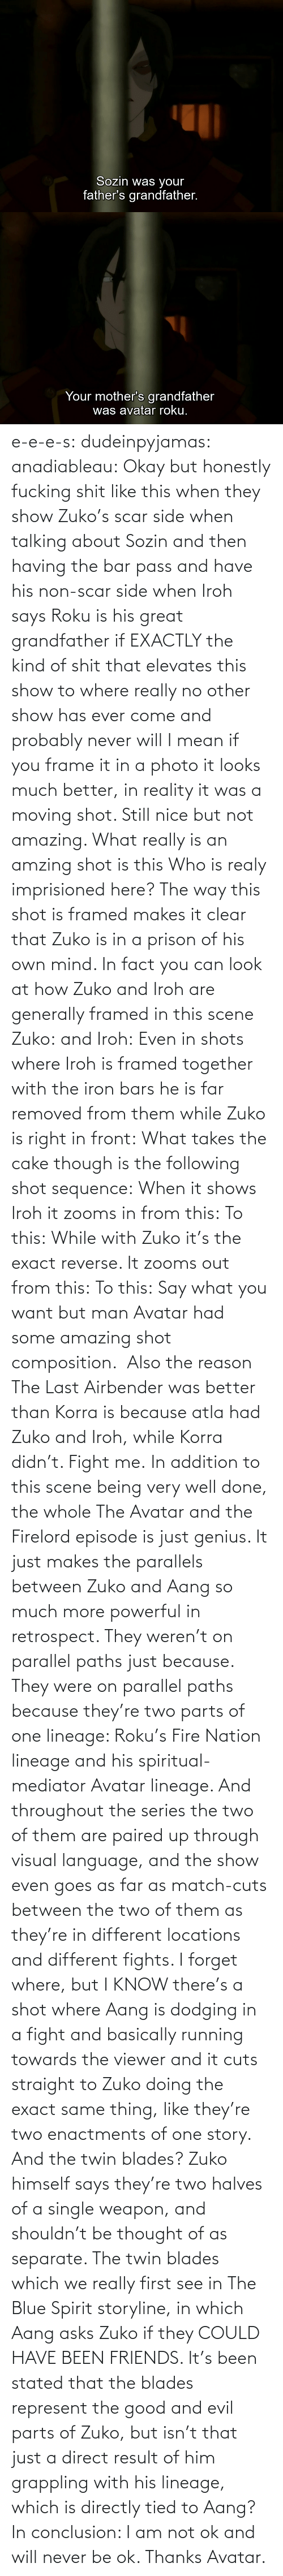 shots: e-e-e-s: dudeinpyjamas:   anadiableau: Okay but honestly fucking shit like this when they show Zuko's scar side when talking about Sozin and then having the bar pass and have his non-scar side when Iroh says Roku is his great grandfather if EXACTLY the kind of shit that elevates this show to where really no other show has ever come and probably never will I mean if you frame it in a photo it looks much better, in reality it was a moving shot. Still nice but not amazing. What really is an amzing shot is this Who is realy imprisioned here? The way this shot is framed makes it clear that Zuko is in a prison of his own mind. In fact you can look at how Zuko and Iroh are generally framed in this scene Zuko: and Iroh: Even in shots where Iroh is framed together with the iron bars he is far removed from them while Zuko is right in front:  What takes the cake though is the following shot sequence: When it shows Iroh it zooms in from this: To this: While with Zuko it's the exact reverse. It zooms out from this: To this: Say what you want but man Avatar had some amazing shot composition.   Also the reason The Last Airbender was better than Korra is because atla had Zuko and Iroh, while Korra didn't. Fight me.    In addition to this scene being very well done, the whole The Avatar and the Firelord episode is just genius.  It just makes the parallels between Zuko and Aang so much more powerful in retrospect.  They weren't on parallel paths just because.  They were on parallel paths because they're two parts of one lineage: Roku's Fire Nation lineage and his spiritual-mediator Avatar lineage.  And throughout the series the two of them are paired up through visual language, and the show even goes as far as match-cuts between the two of them as they're in different locations and different fights.  I forget where, but I KNOW there's a shot where Aang is dodging in a fight and basically running towards the viewer and it cuts straight to Zuko doing the exact same thing, like they're two enactments of one story.   And the twin blades?  Zuko himself says they're two halves of a single weapon, and shouldn't be thought of as separate.  The twin blades which we really first see in The Blue Spirit storyline, in which Aang asks Zuko if they COULD HAVE BEEN FRIENDS.  It's been stated that the blades represent the good and evil parts of Zuko, but isn't that just a direct result of him grappling with his lineage, which is directly tied to Aang? In conclusion: I am not ok and will never be ok.  Thanks Avatar.